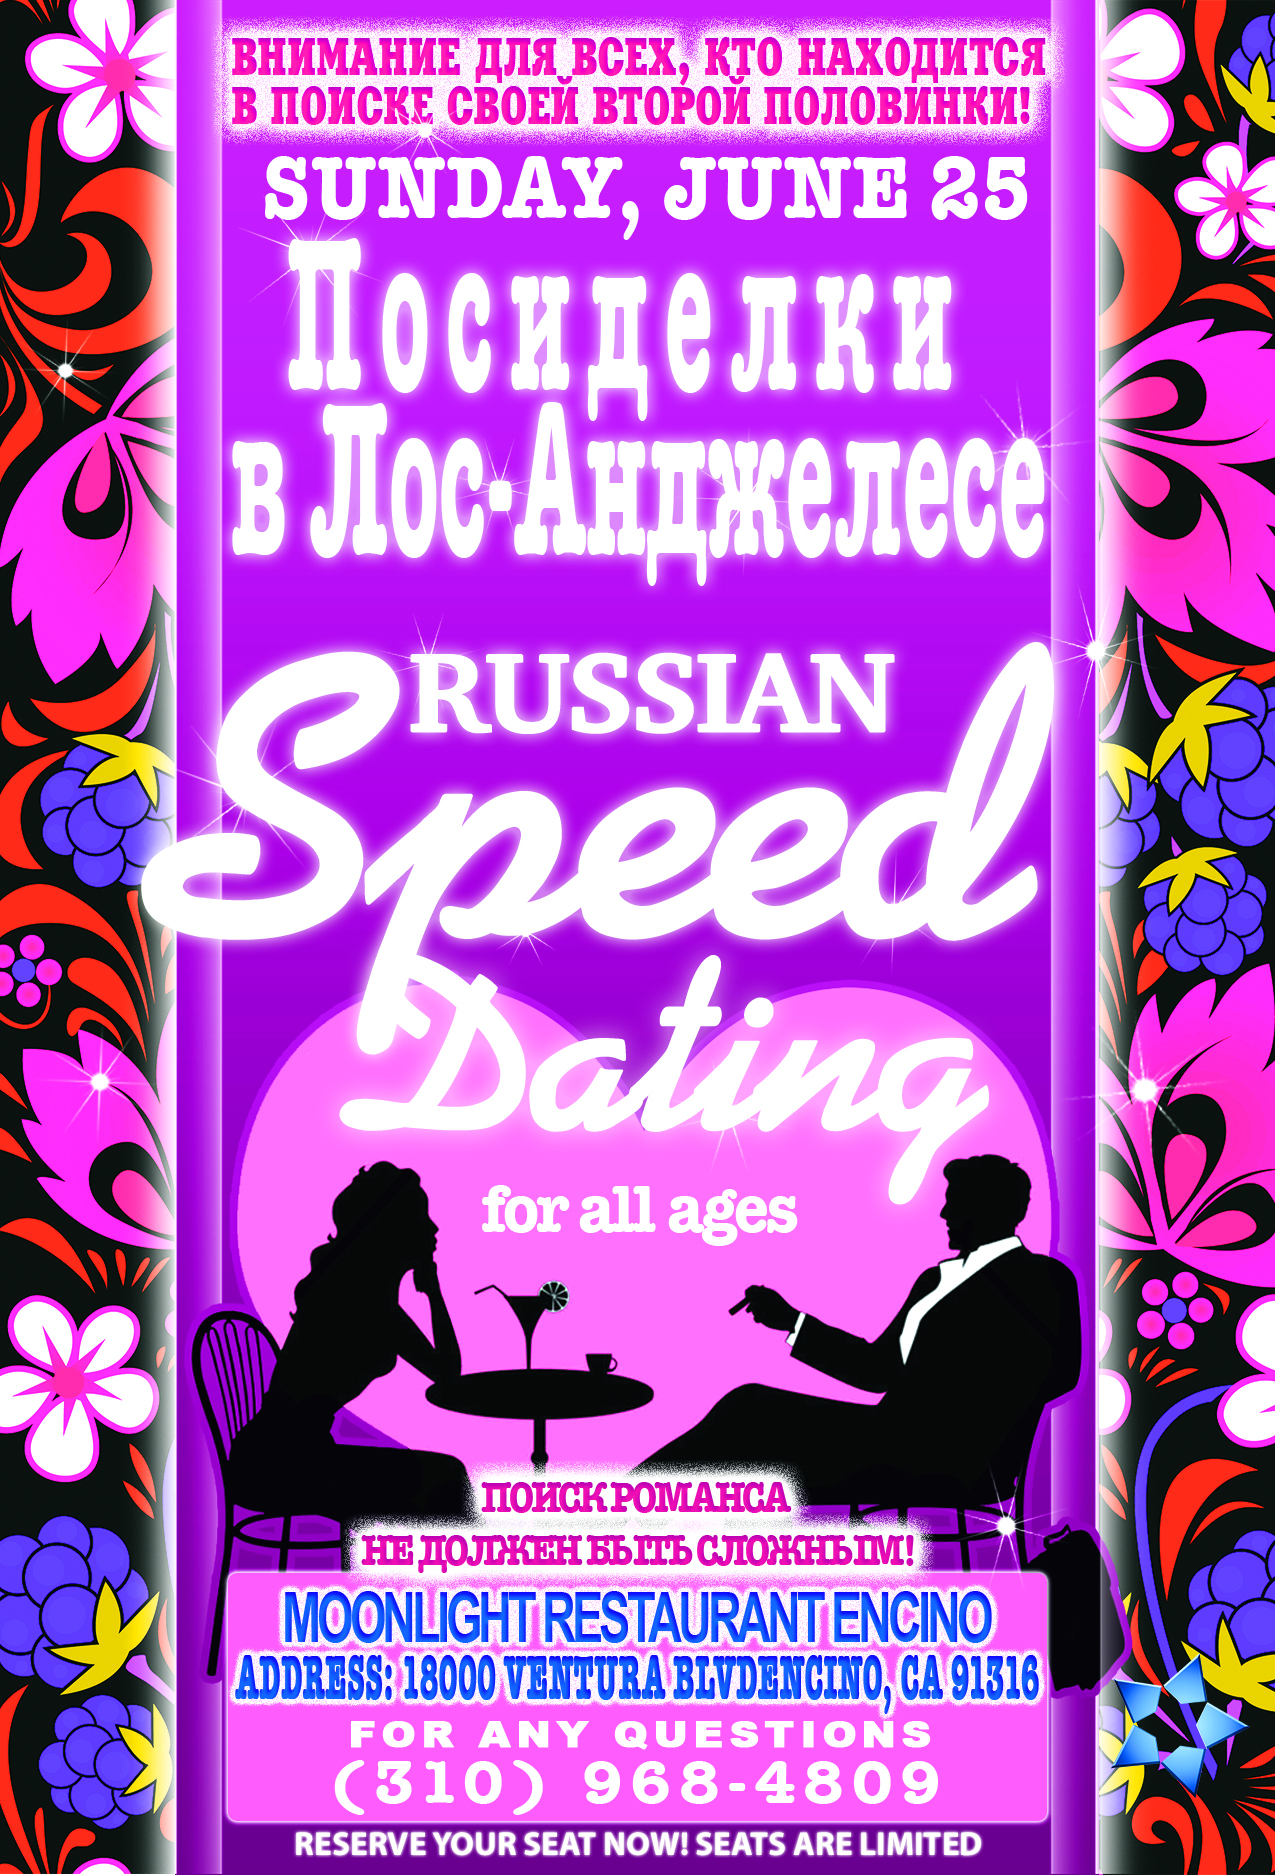 speed dating under 25 Dating doesn't have to be that way at over thirty singles we have over 27 years of experience working with quality singles like you to find them the person of their.